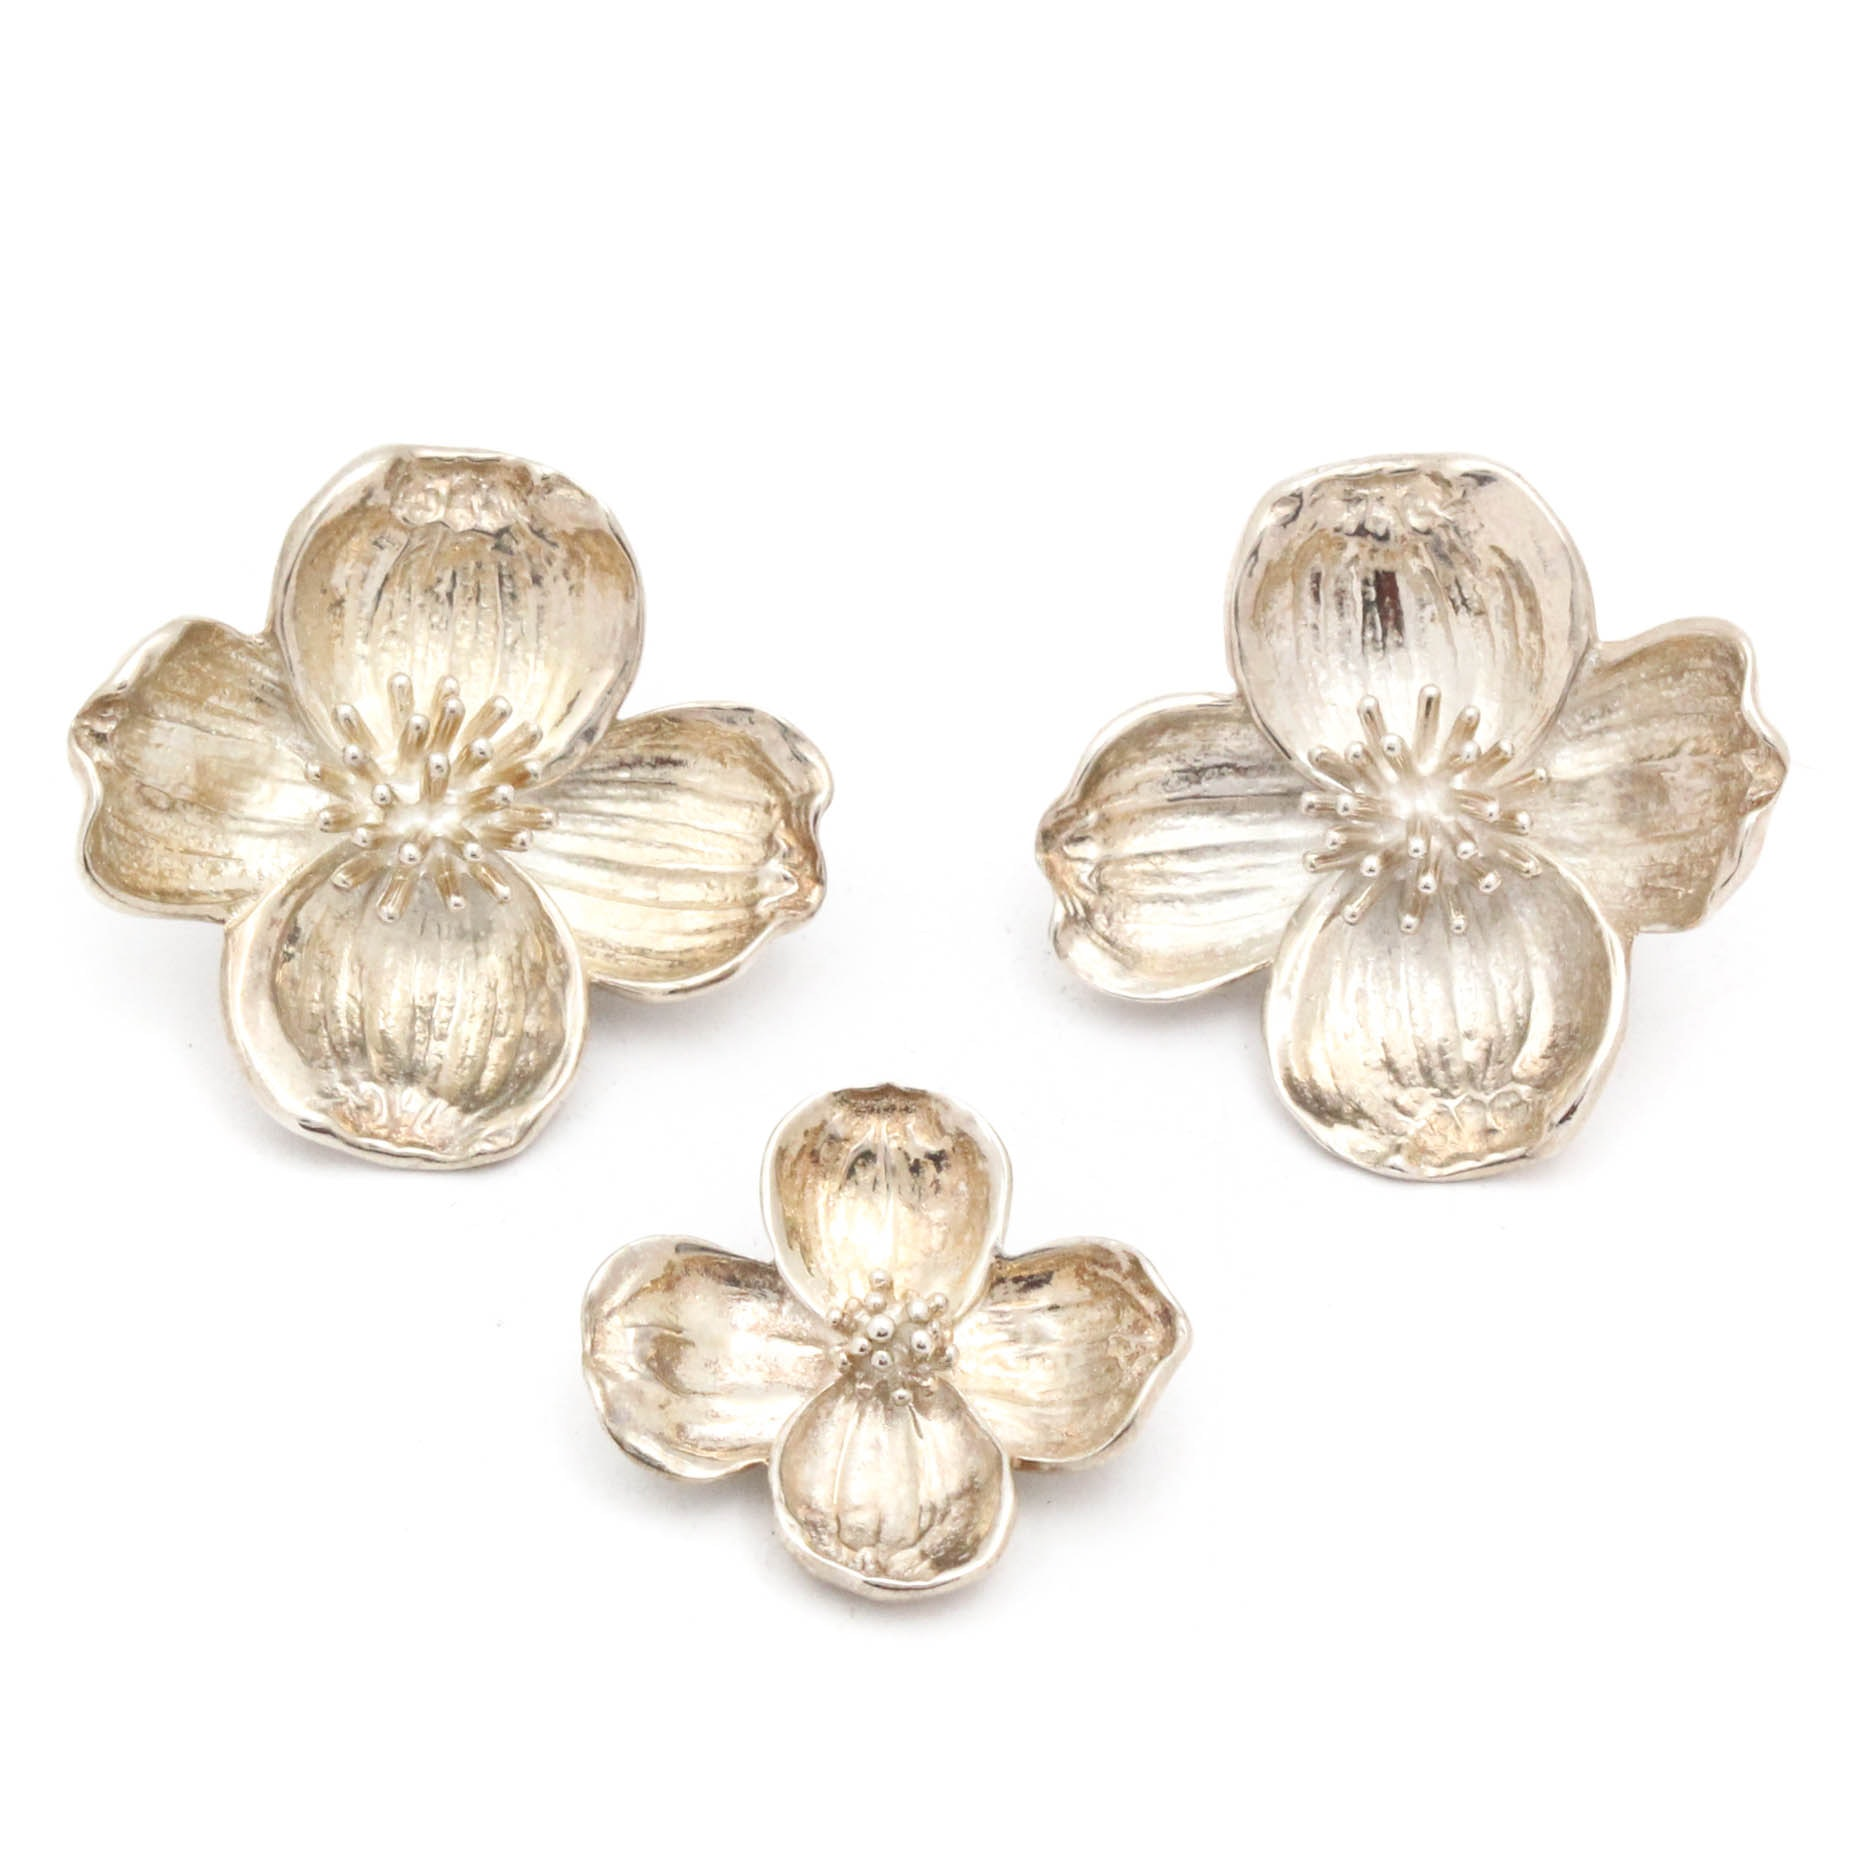 Vintage Tiffany & Co. Sterling Silver Flower Clip Earrings and Brooch